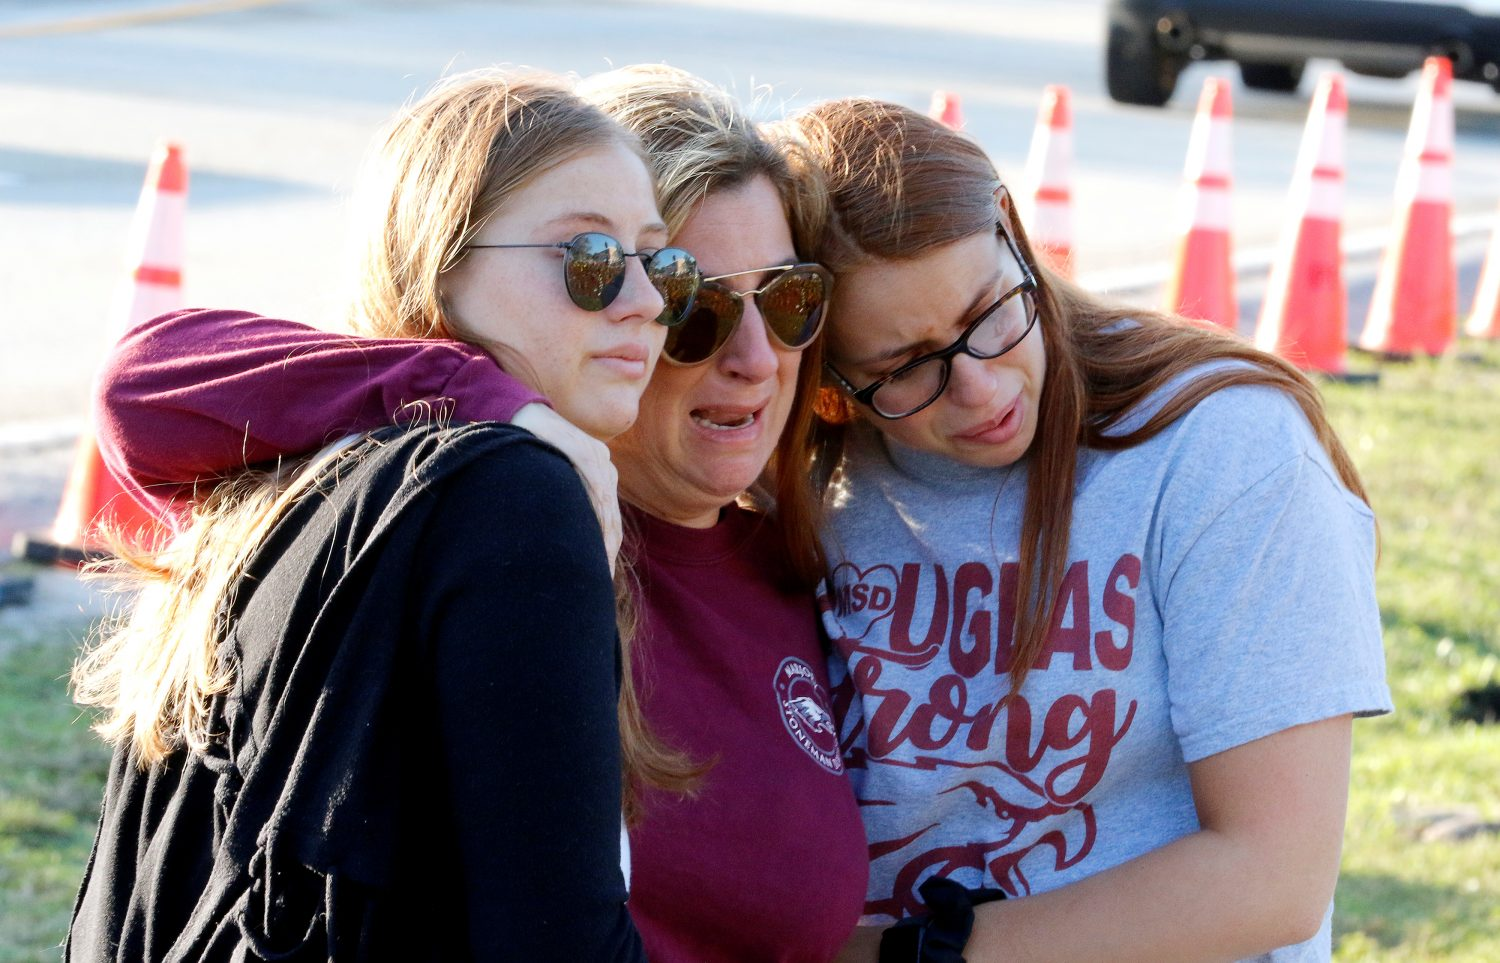 Cheryl Rothenberg embraces her daughters Emma and Sophia as they view a memorial on the one year anniversary of the shooting which claimed 17 lives at Marjory Stoneman Douglas High School in Parkland, Florida, U.S., February 14, 2019. Sophia is a student at the school and Emma is a recent graduate. REUTERS/Joe Skipper